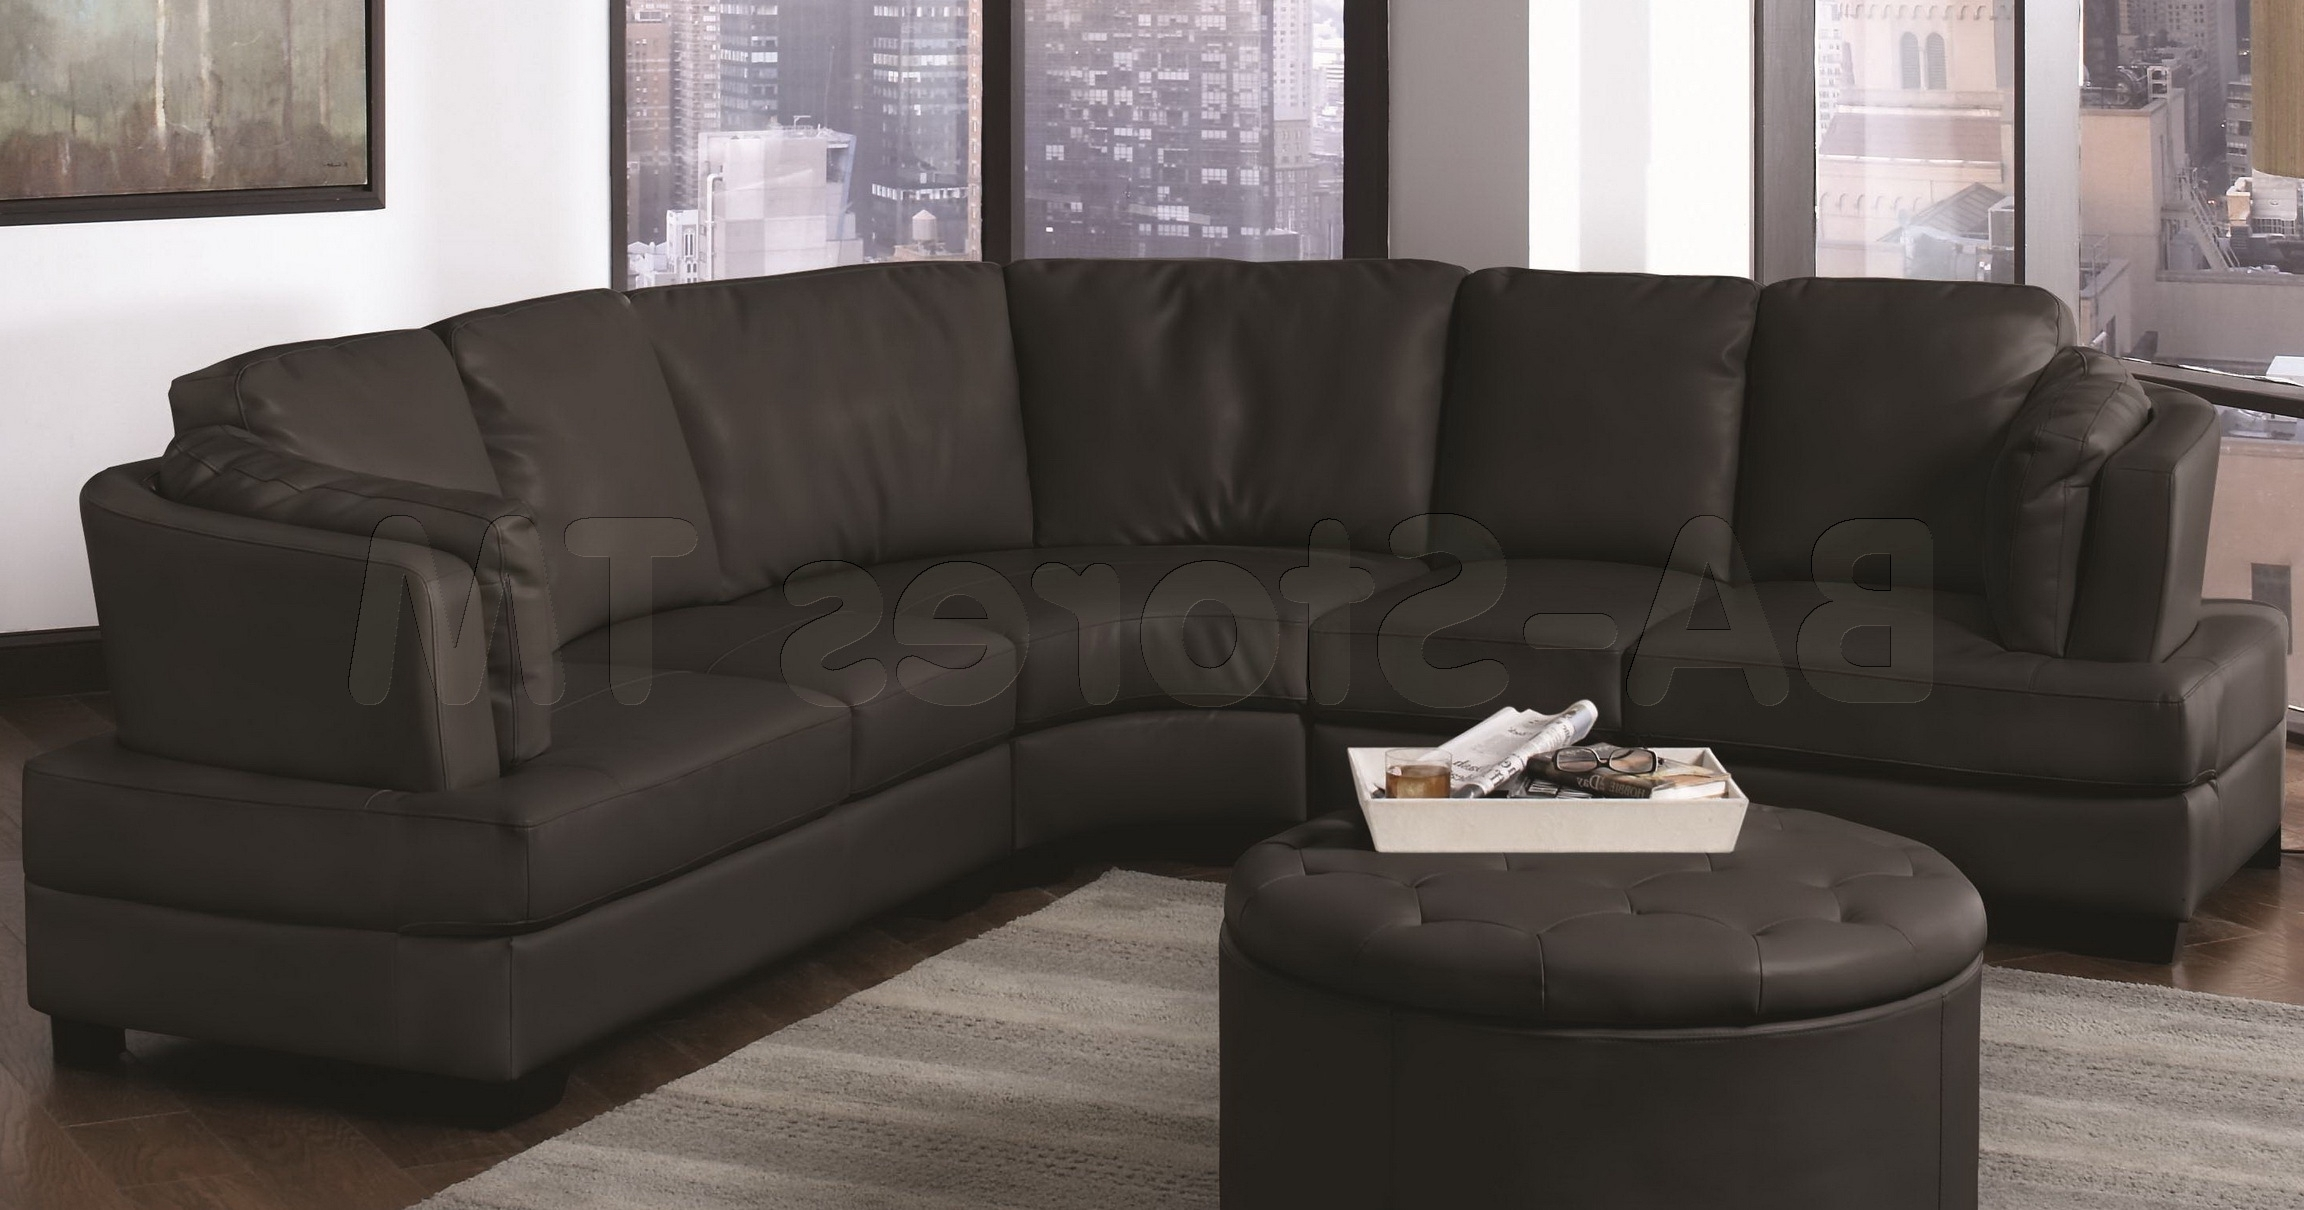 Sectional Sofa : Round Couch Curved Two Seater Sofa Reclining With Regard To Most Recent Rounded Corner Sectional Sofas (View 11 of 15)